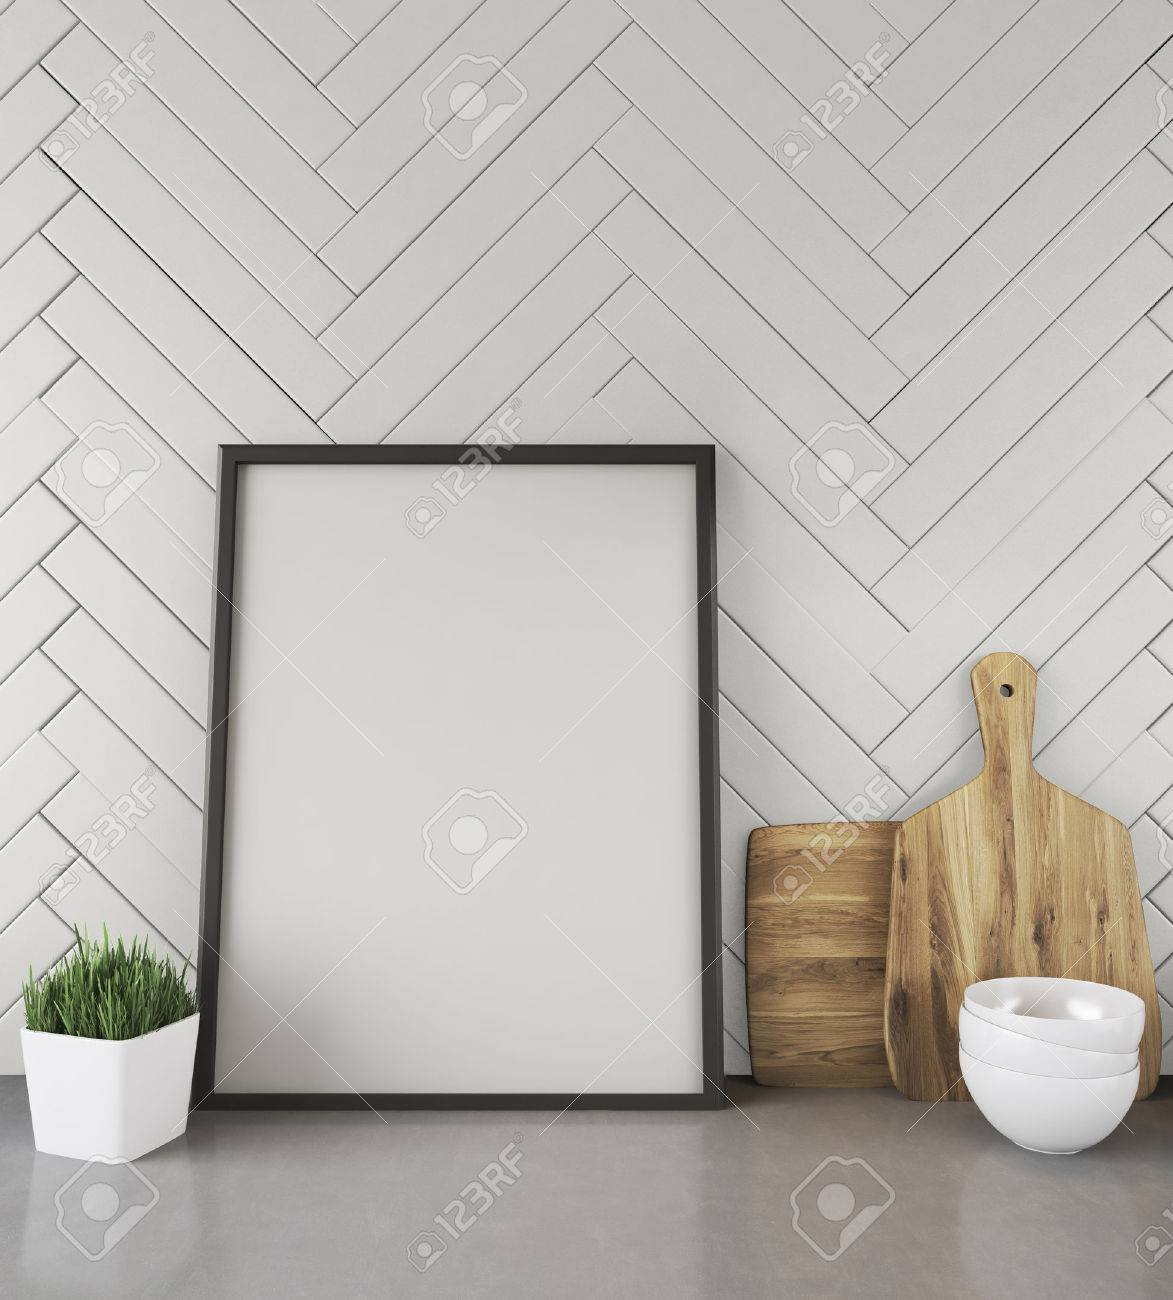 Blank Kitchen Wall 311599 Blank Frame Cliparts Stock Vector And Royalty Free Blank